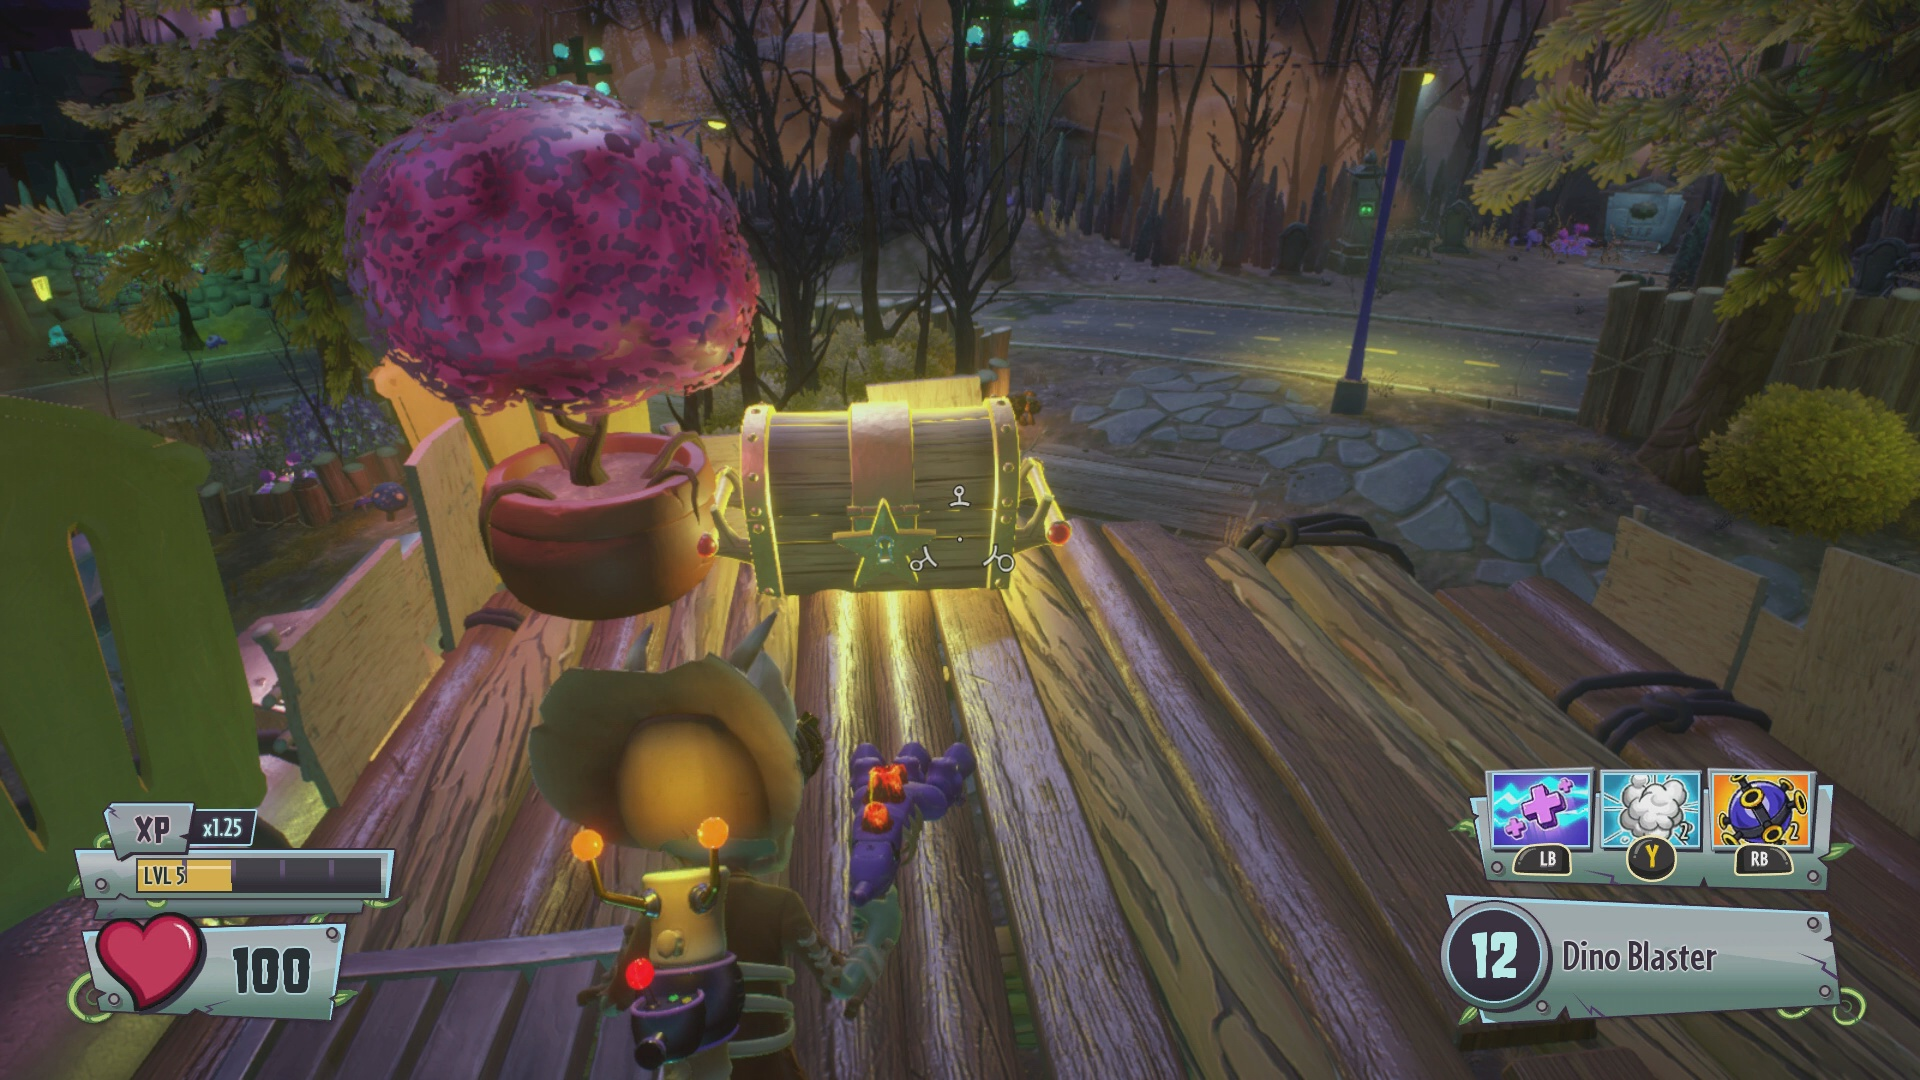 Plants vs Zombies Garden Warfare 2 - How to Earn and Use